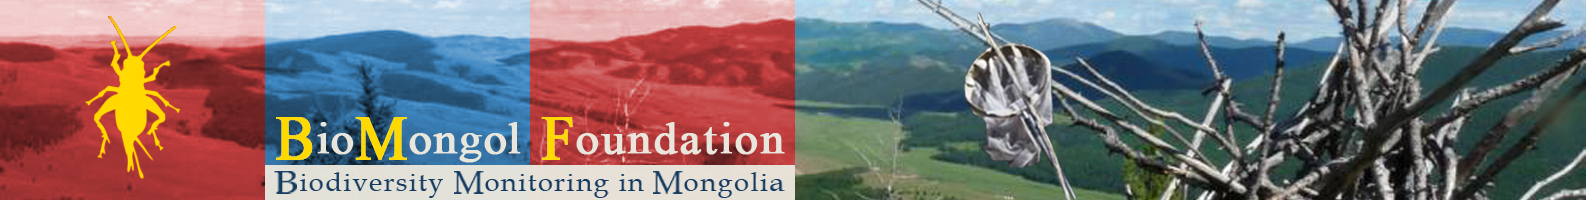 BioMongol Foundation